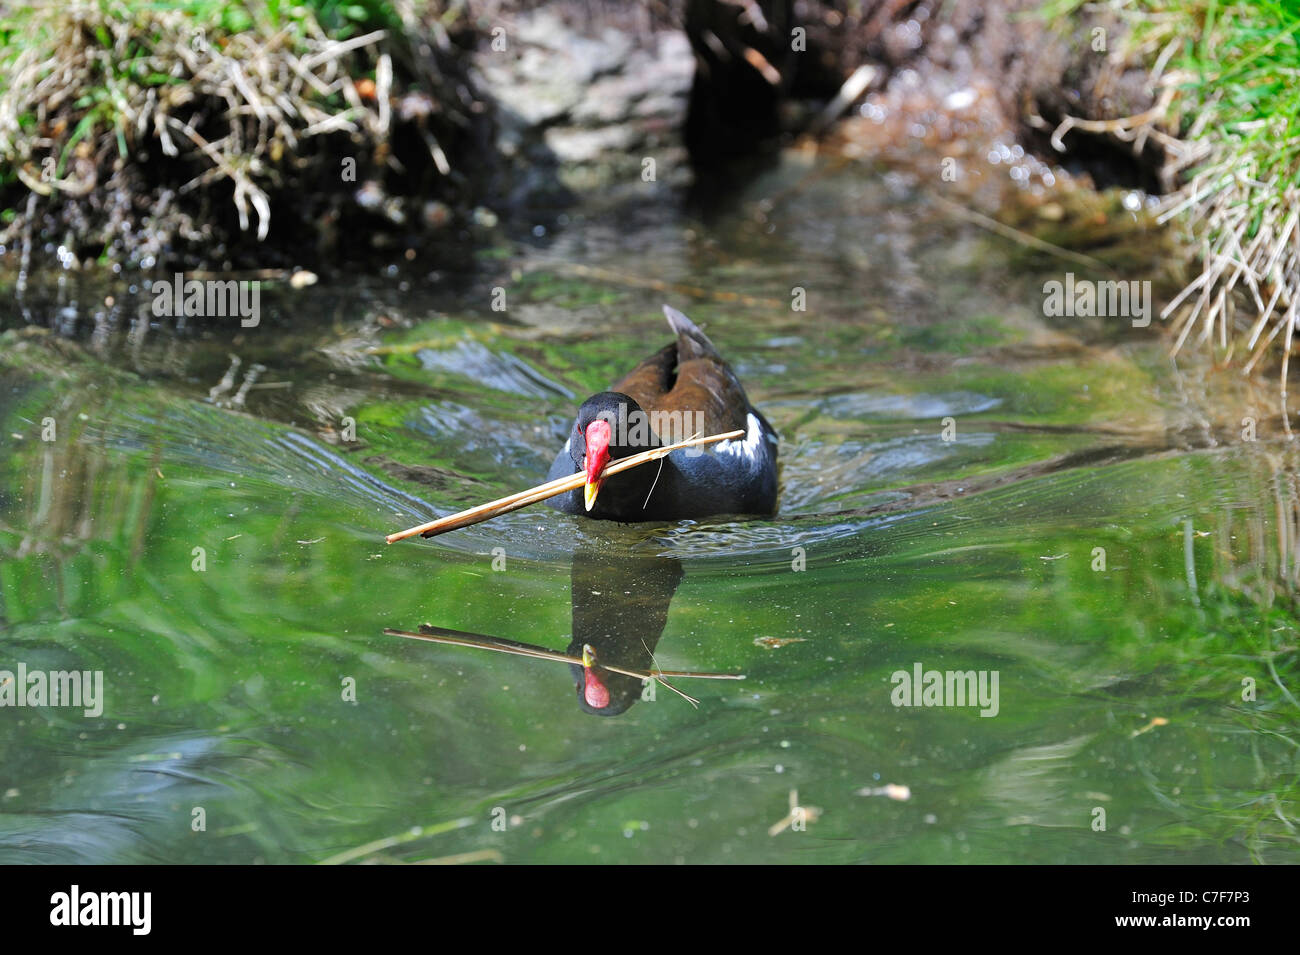 Common Moorhen / Common Gallinule (Gallinula chloropus) swimming in pond with twig in beak for nest building, Germany - Stock Image